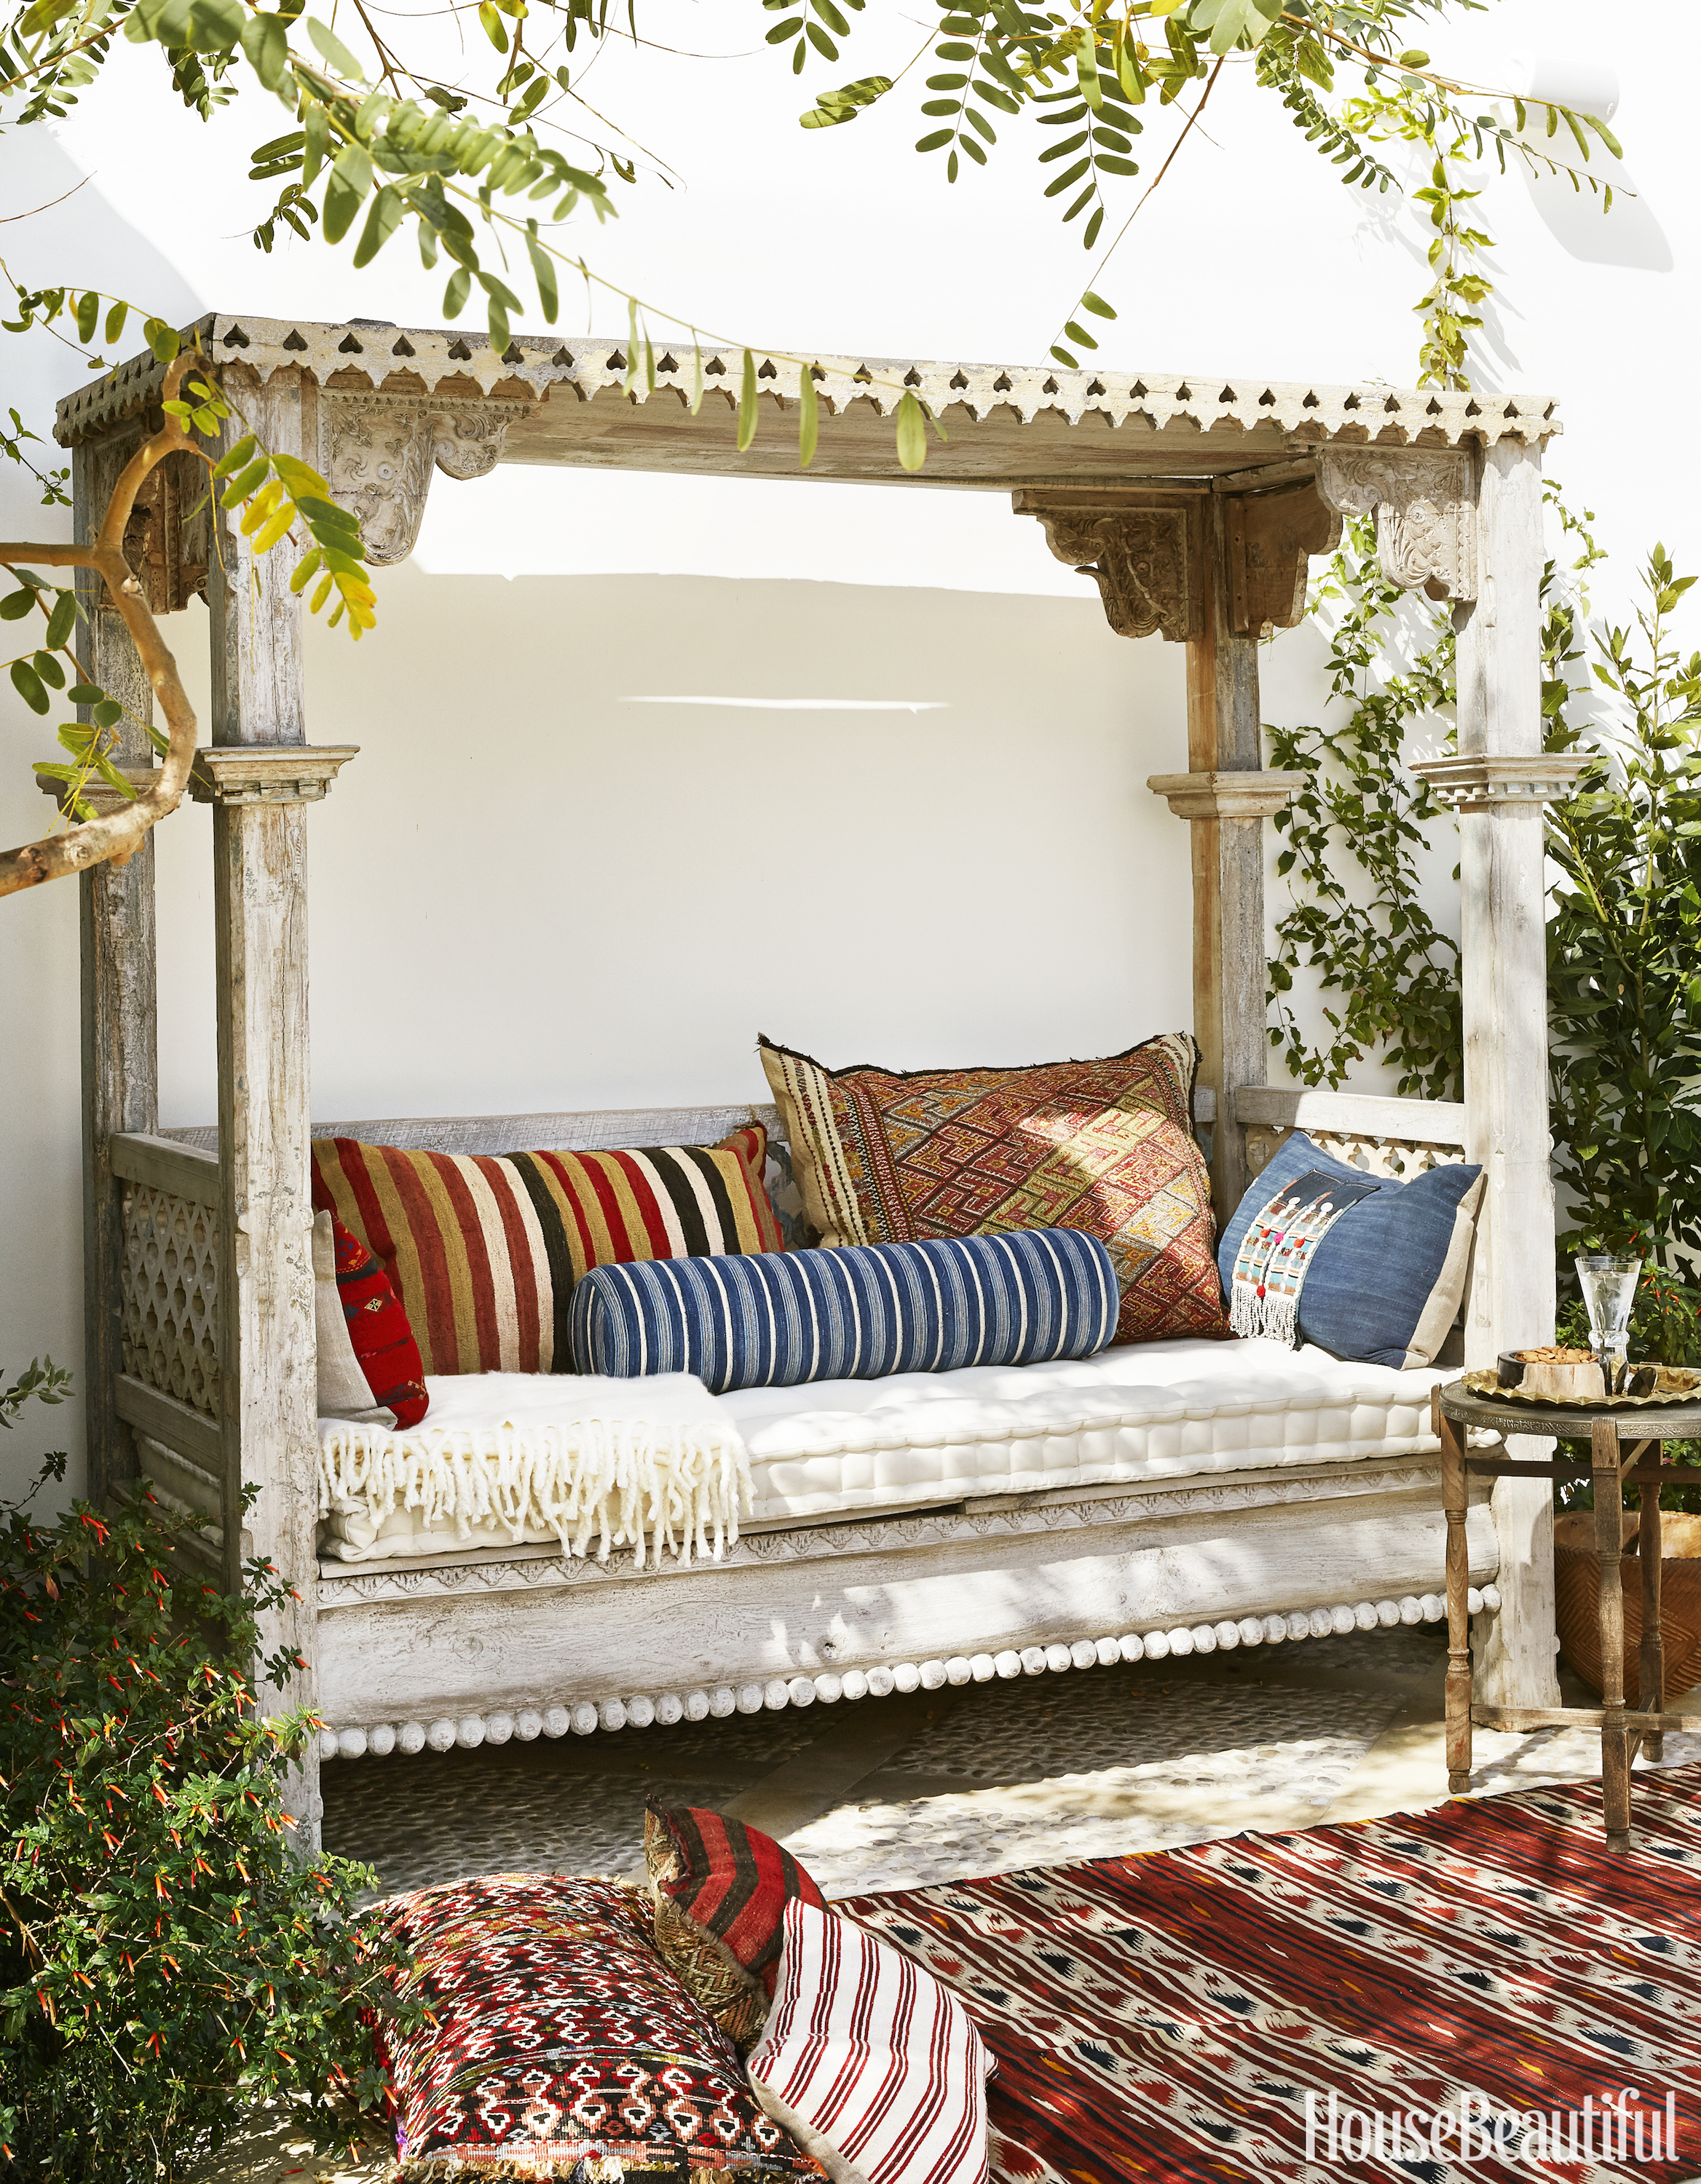 Outdoor Room Design: 50 Patio And Outdoor Room Design Ideas And Photos